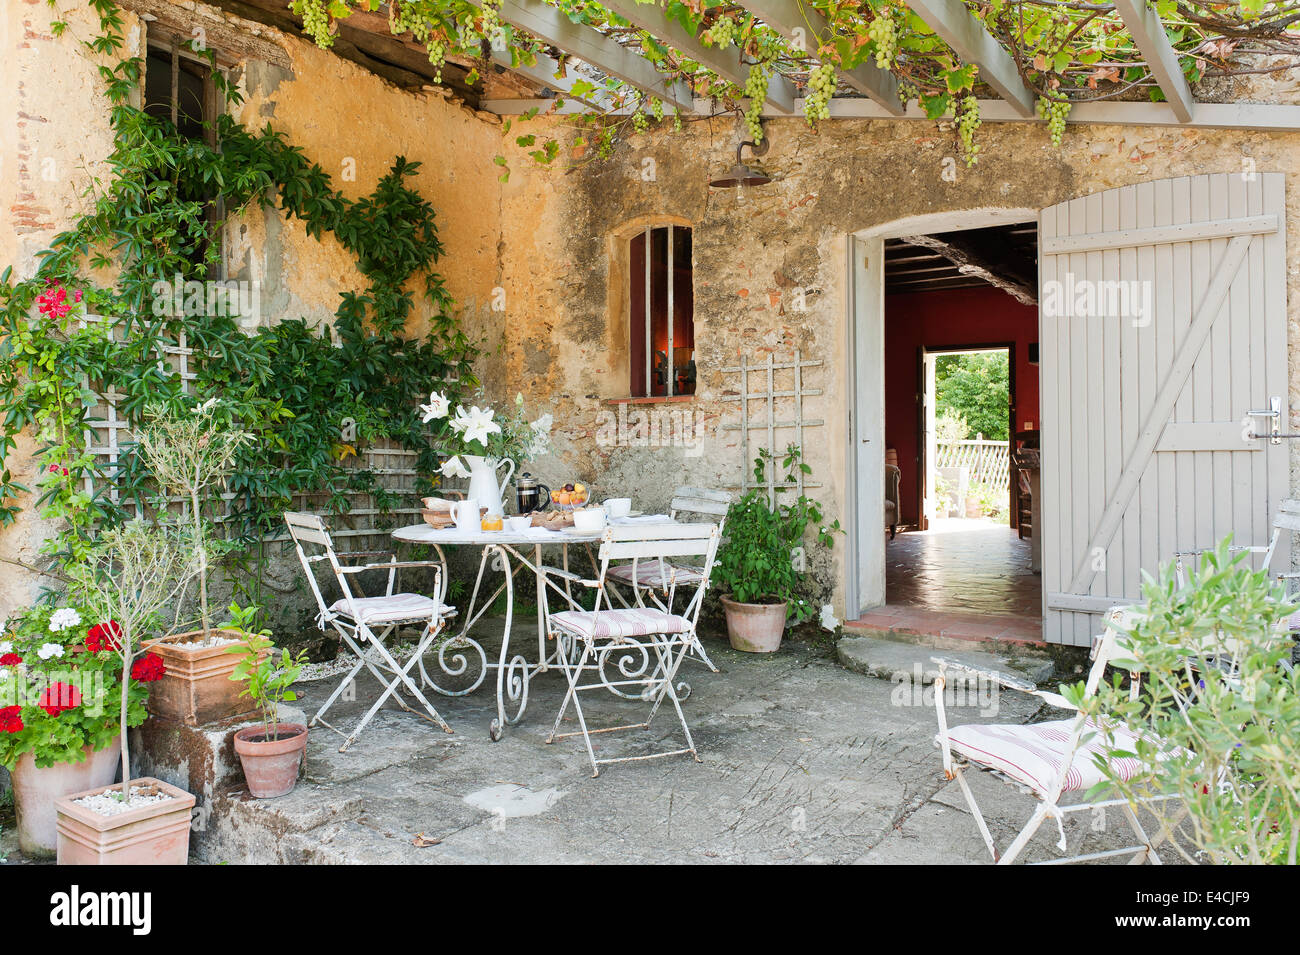 Wrought iron table and folding bistro chairs in courtyard with overhead trellis and grapevine - Stock Image